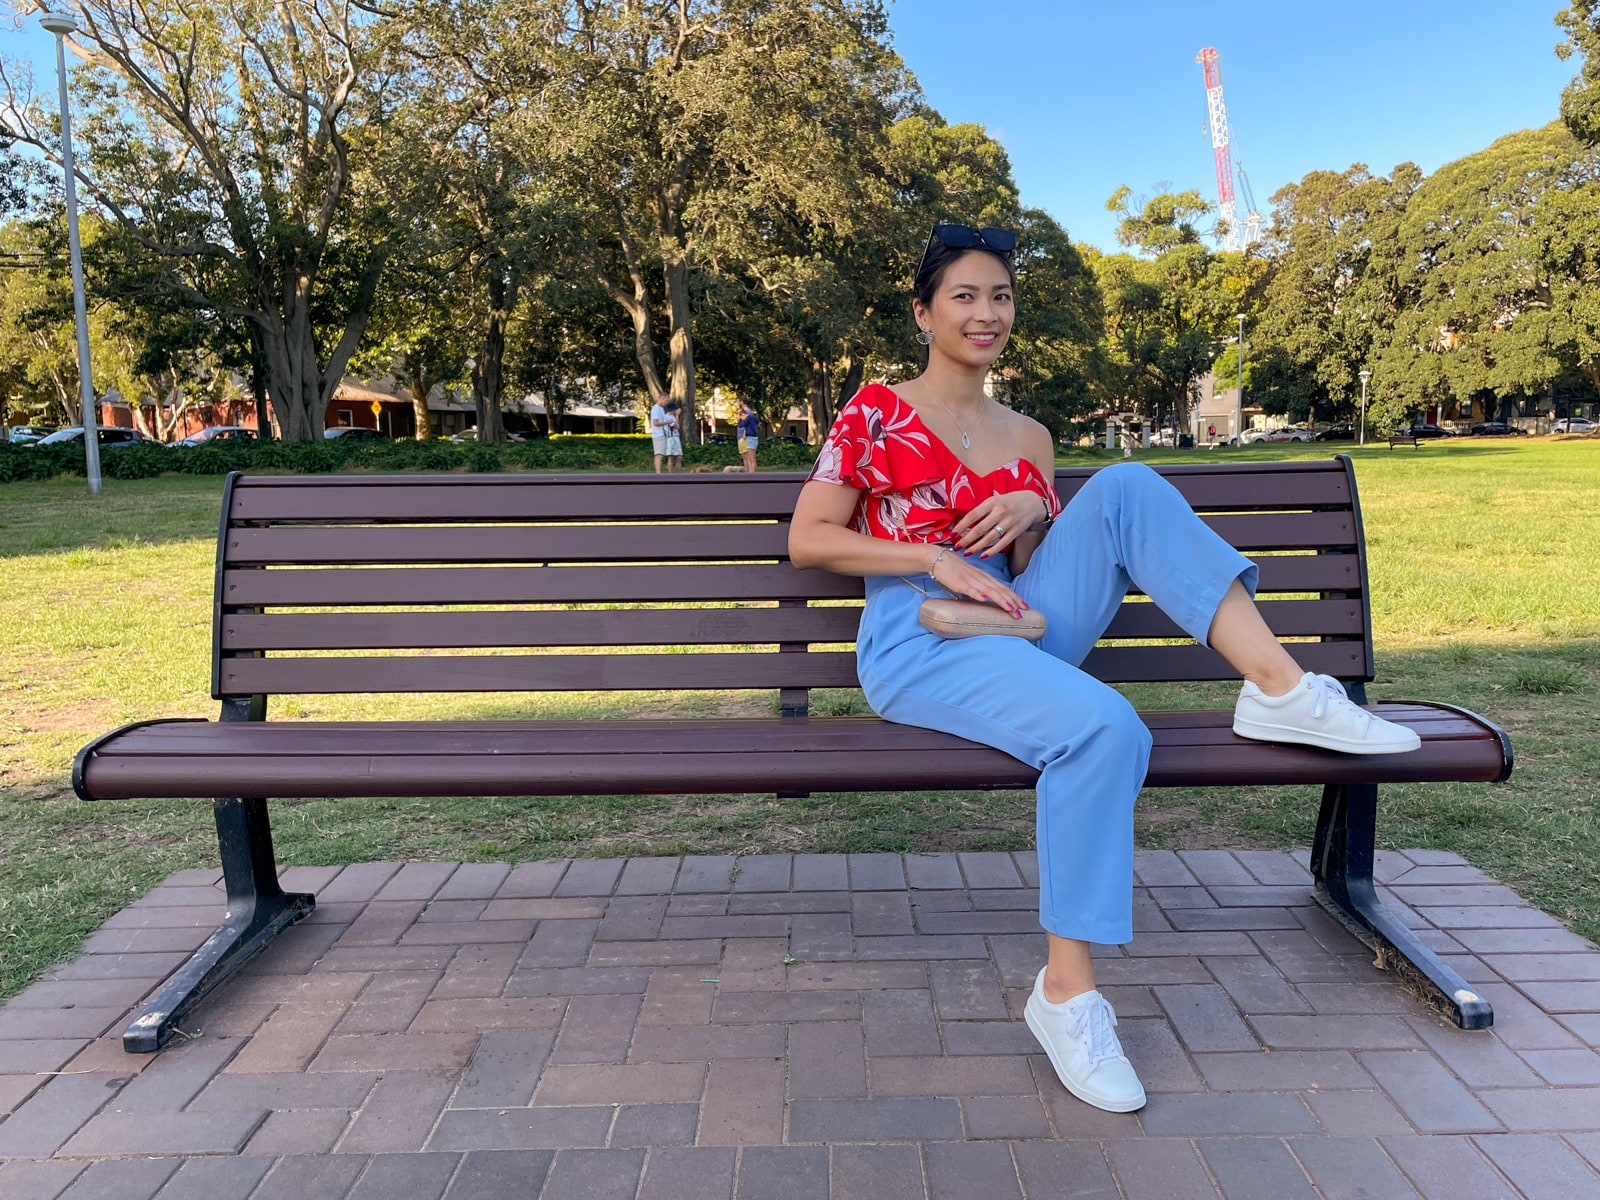 An Asian woman wearing a red top with a floral print, and blue pants, with her hair tied back in a low ponytail. She has white sneakers on and is sitting on a bench, with a leg bent and her foot up on the bench.